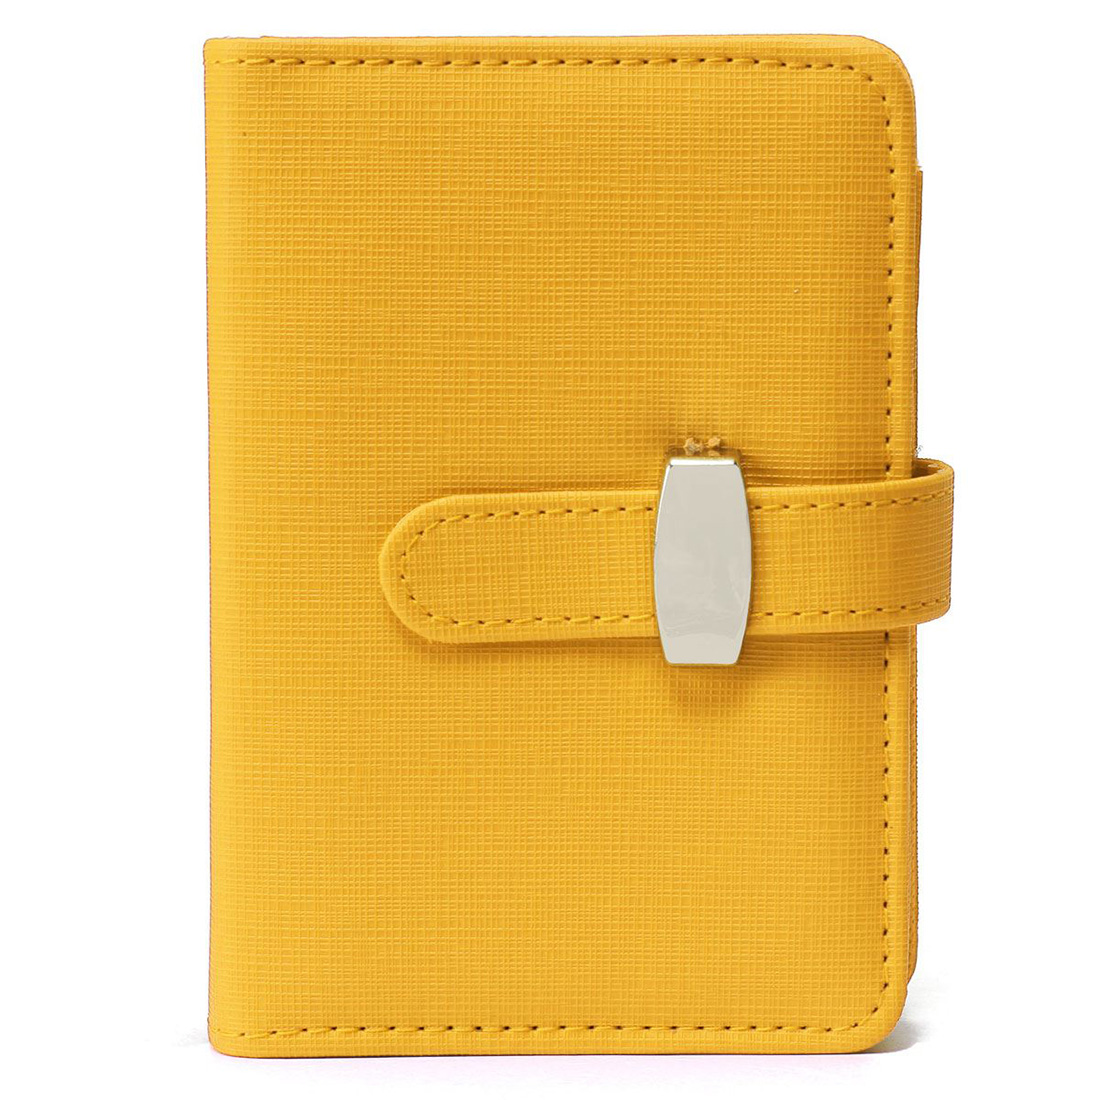 OFSS Modern Design A6 Personal Organiser Planner PU Leather Cover Diary Notebook School Office Stationery (Yellow)